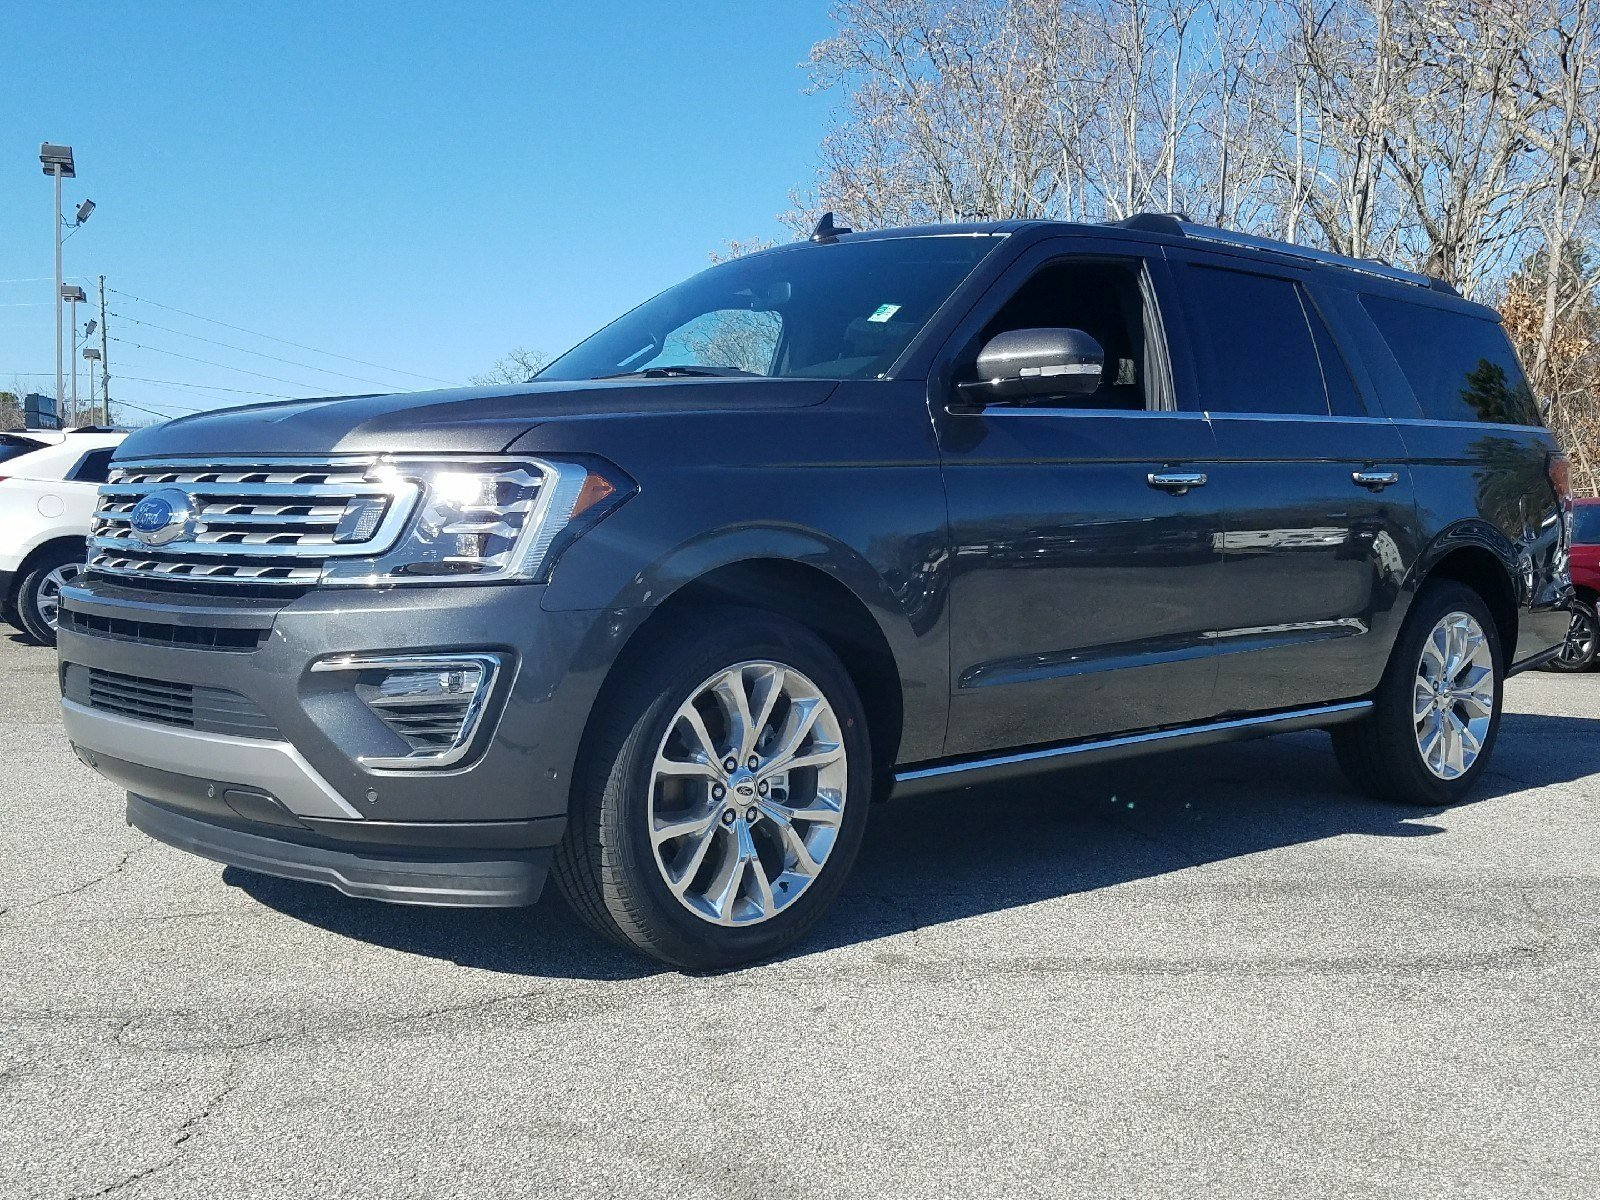 2018 Ford Expedition Limited Automatic 3.5L EcoBoost V6 Engine with Auto Start-Stop Technology SUV 4 Door RWD